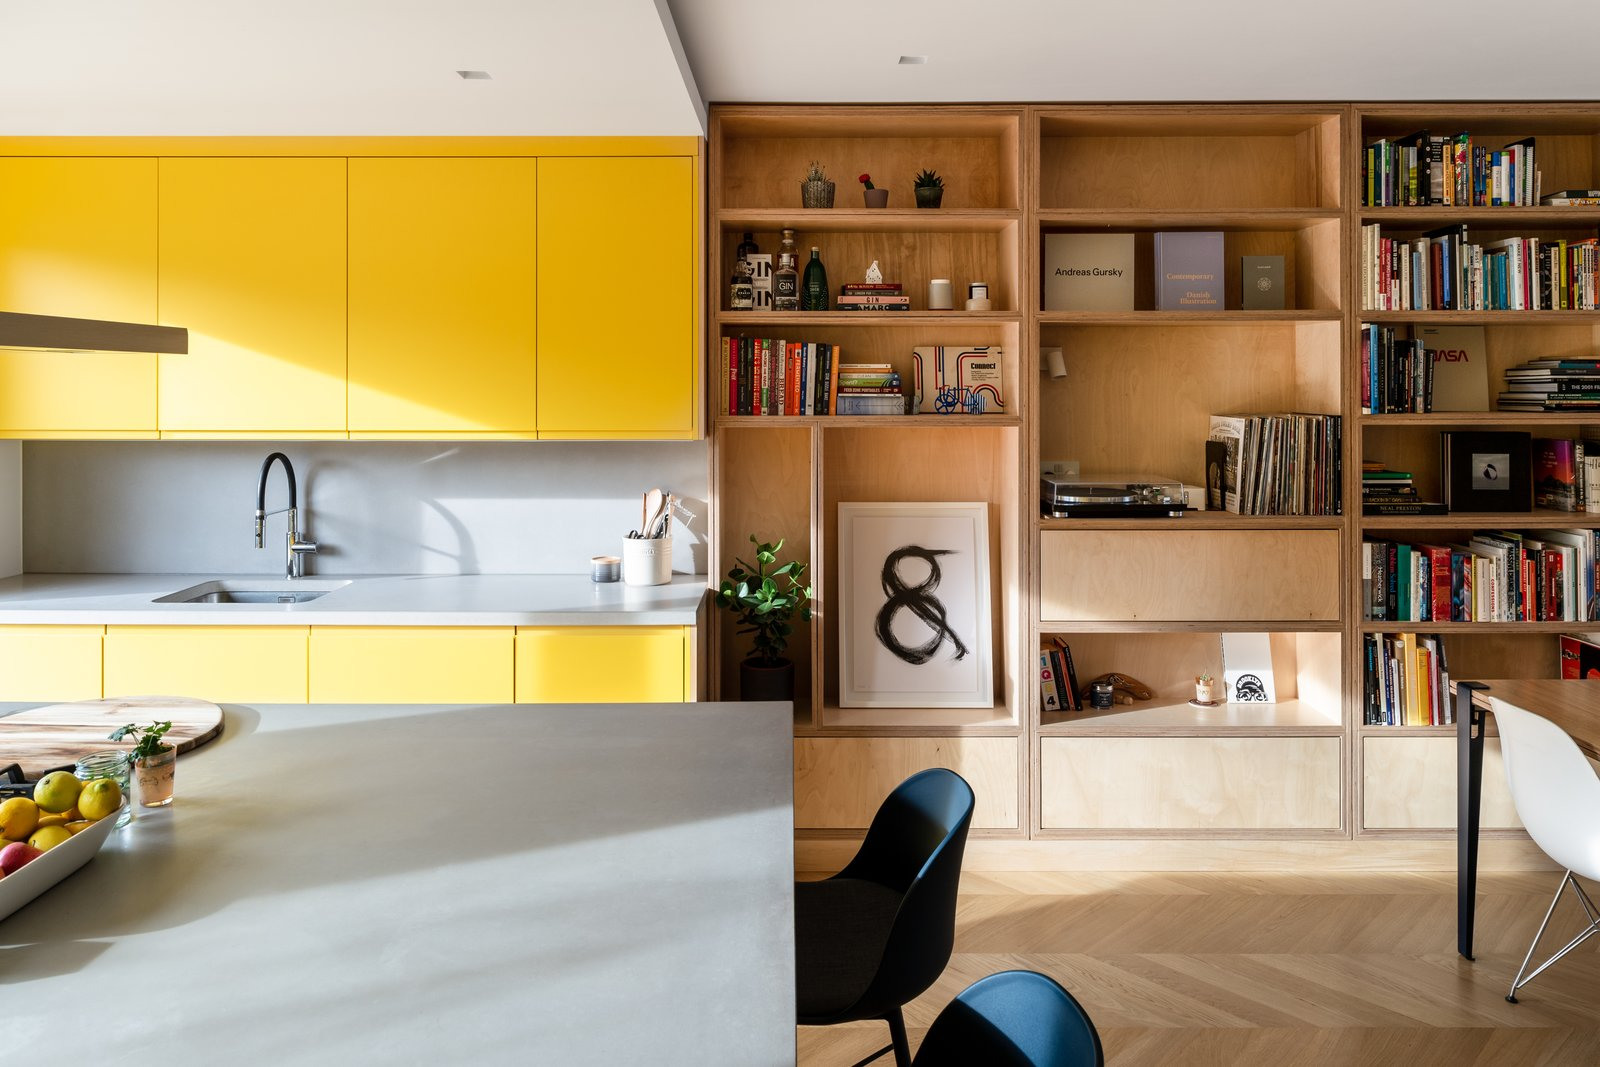 Living Room Bearstead Rise by Gruff Architects  Photo 1 of 13 in A Reinvented Terrace House in London Is Chock-Full of Clever Storage from Bearstead Rise by Gruff Architects